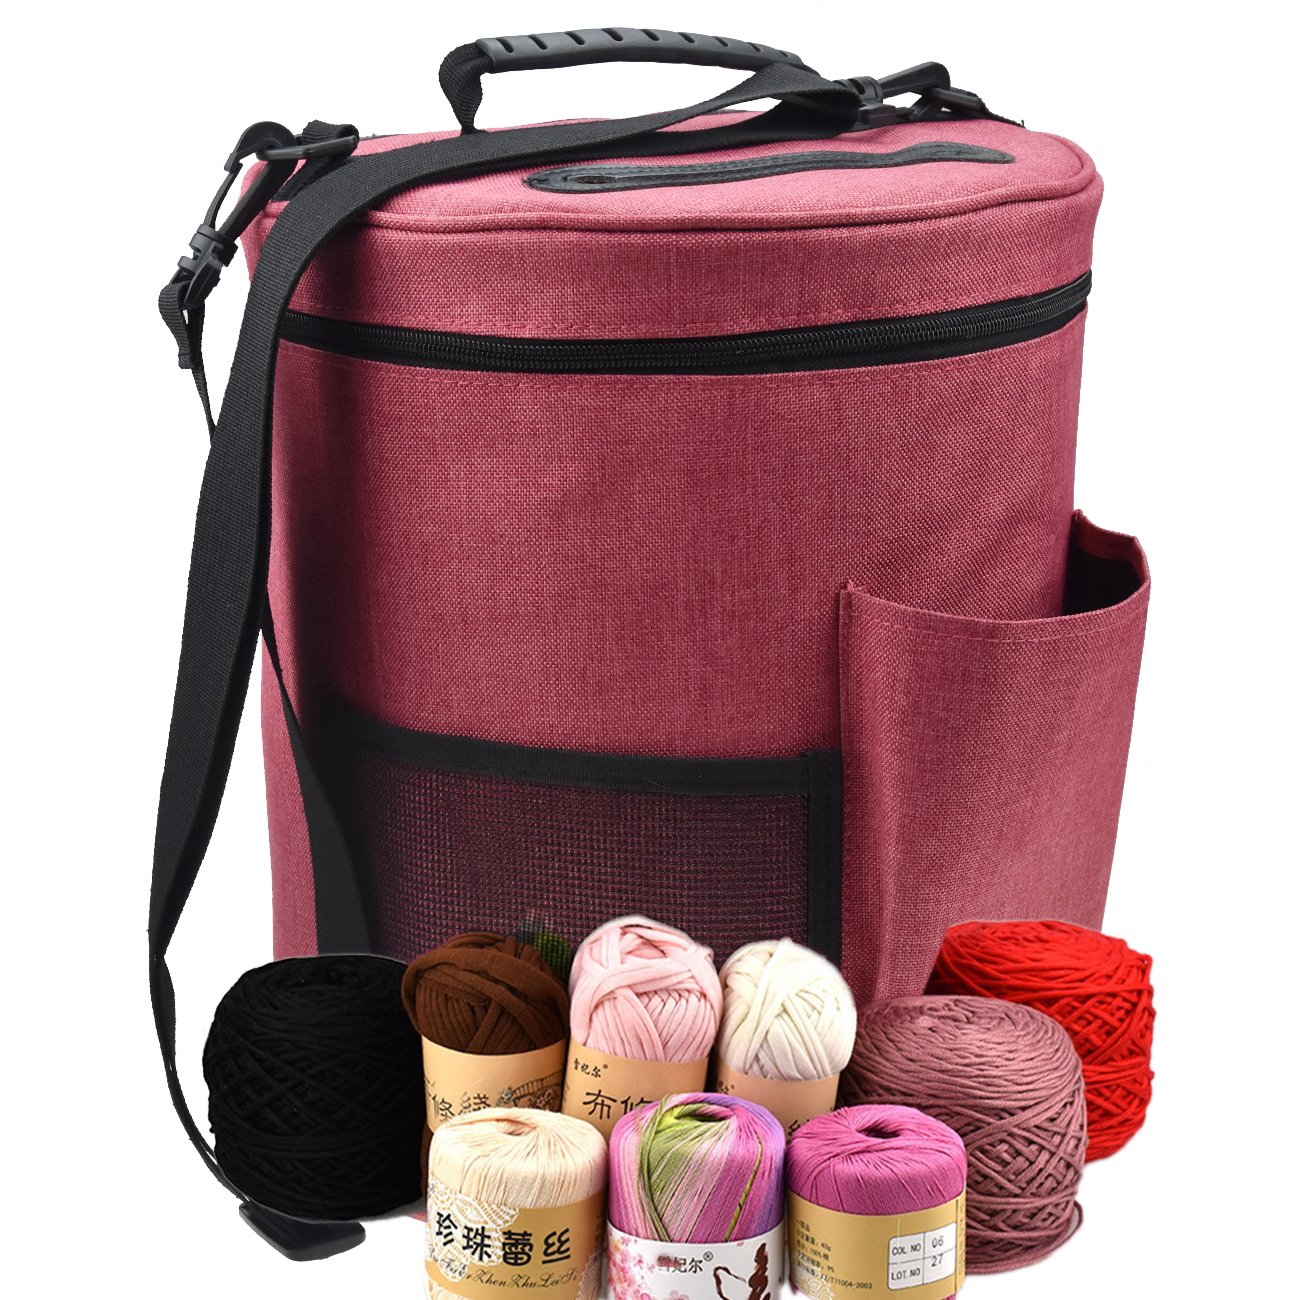 Large Capacity/Portable/Lightweight Yarn Storage Knitting Tote Organizer Bag with Shoulder Strap Handles Looen Yarn Containers W/Pockets for Crochet Hooks & Knitting Needles (Leopard, 12.7X10.8) 12.7X10.8)